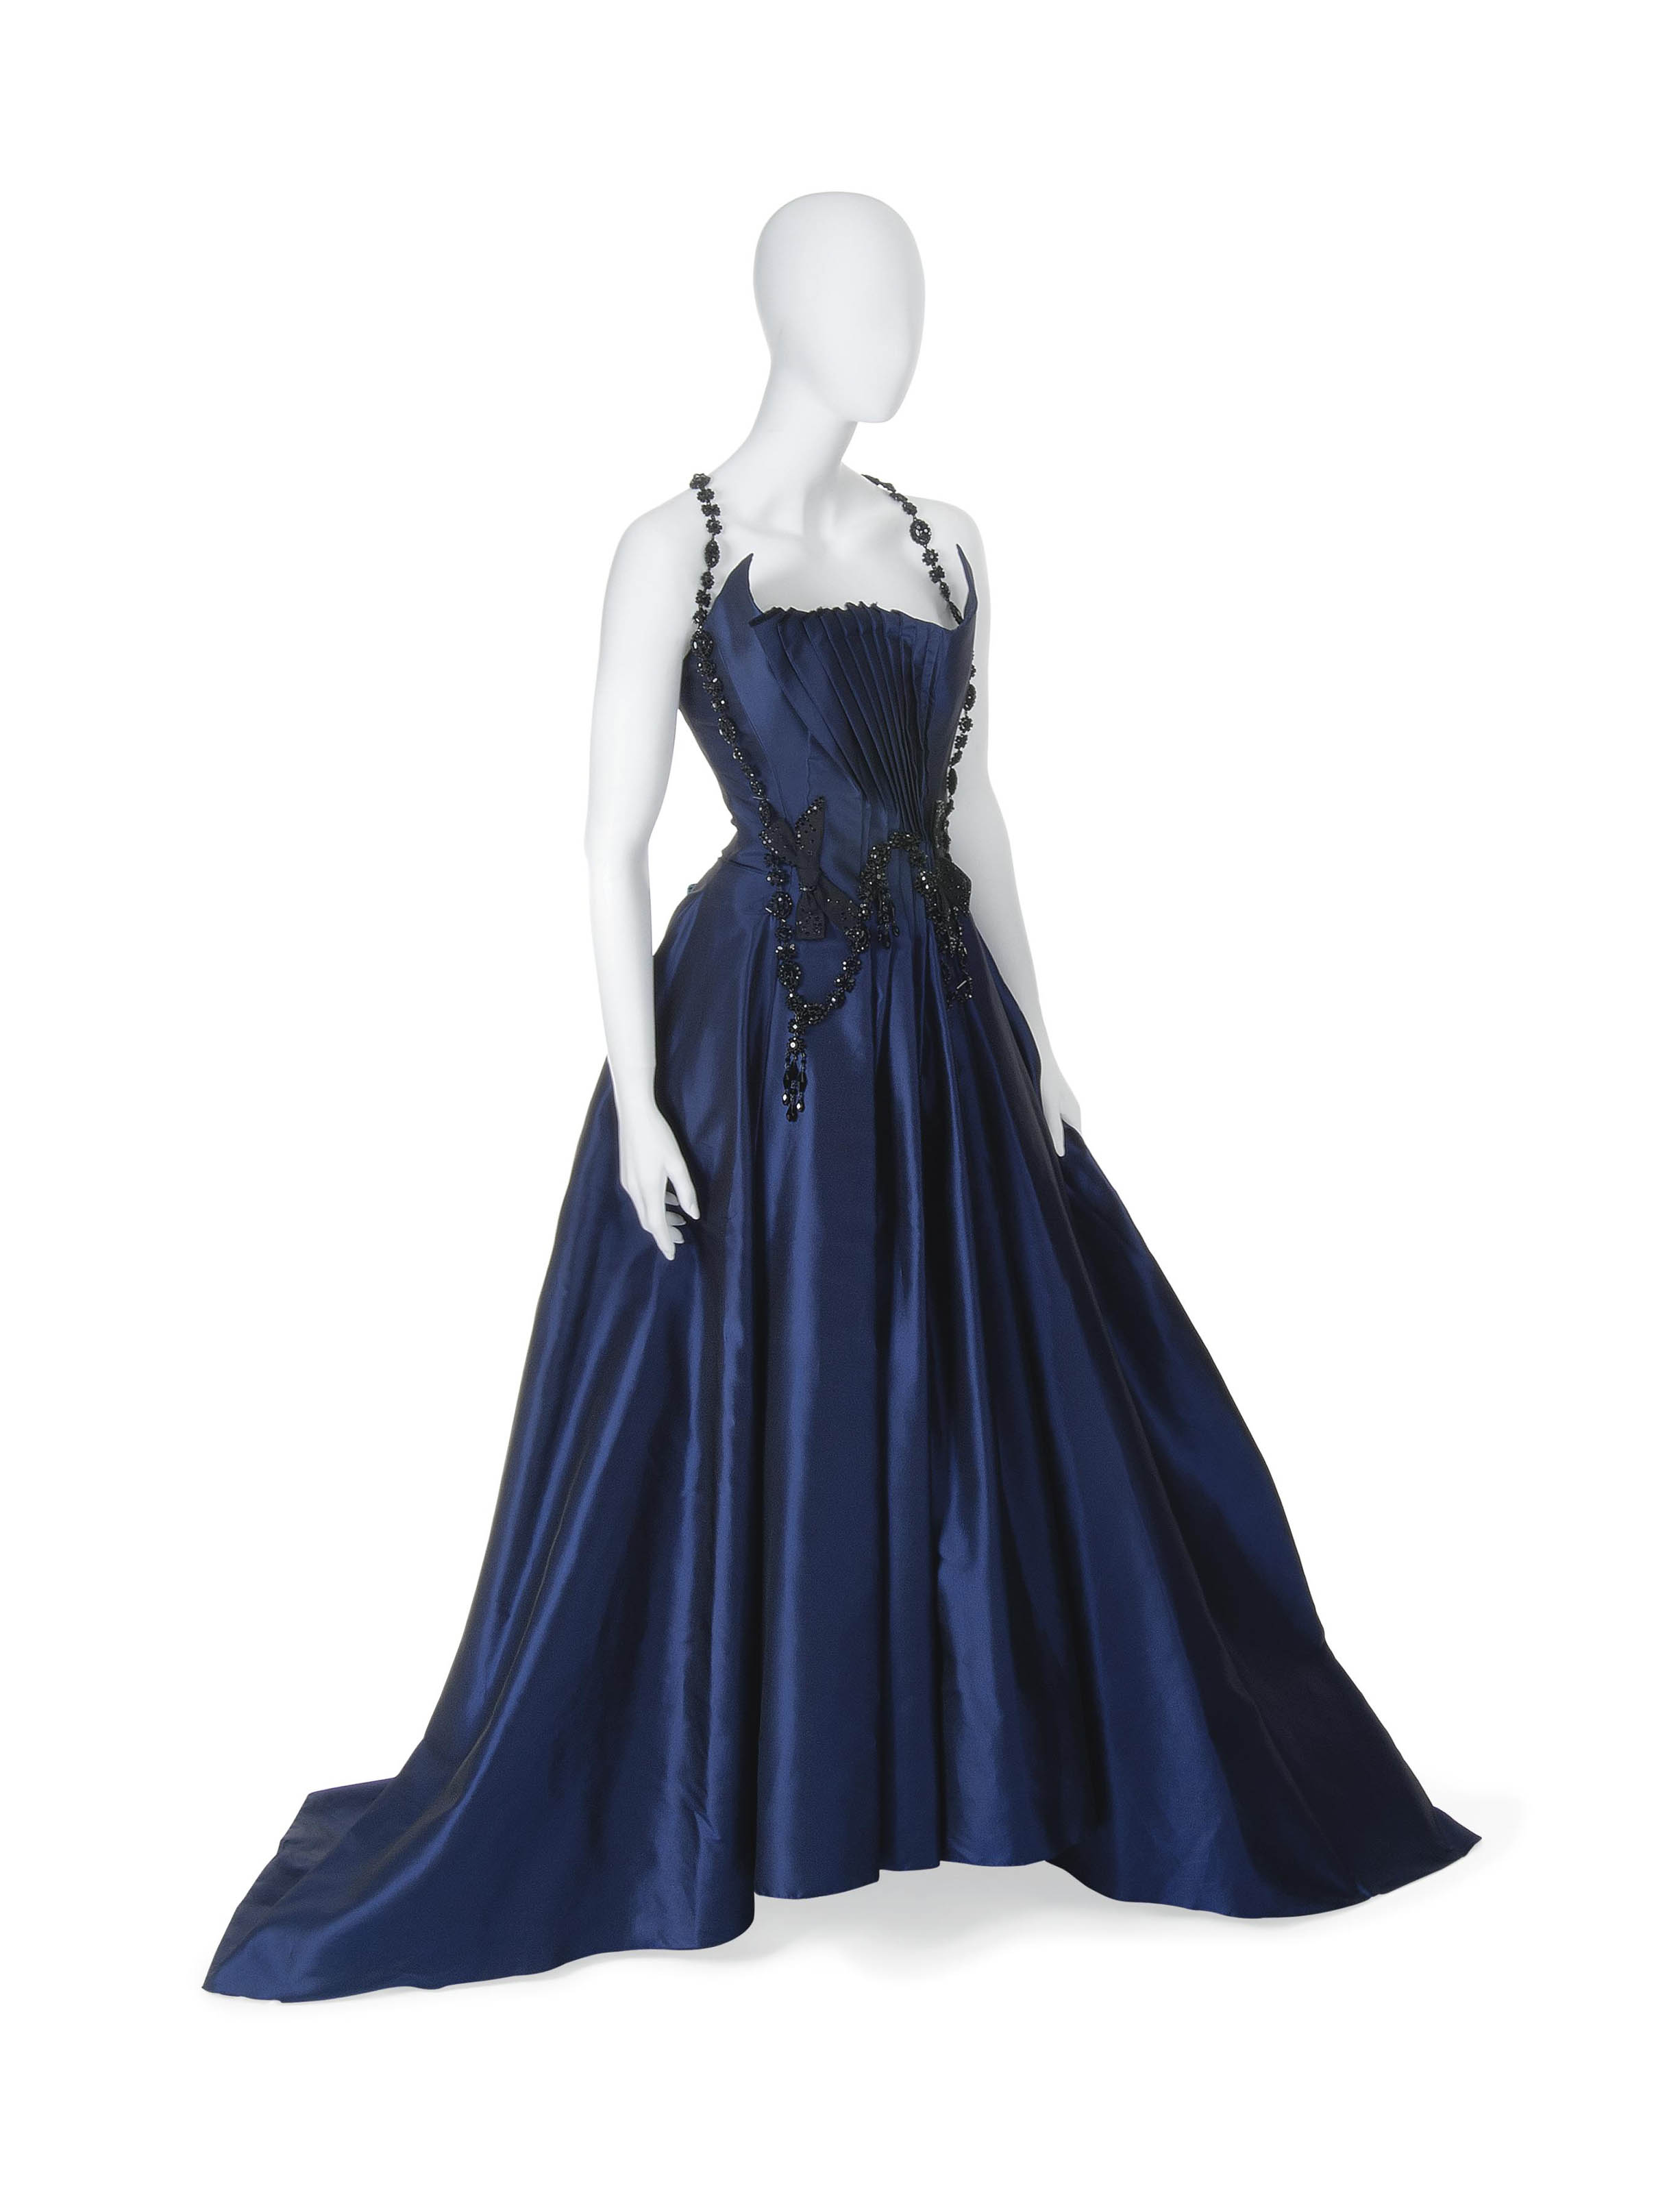 A MAGNIFICENT BALL GOWN OF MIDNIGHT BLUE SATIN